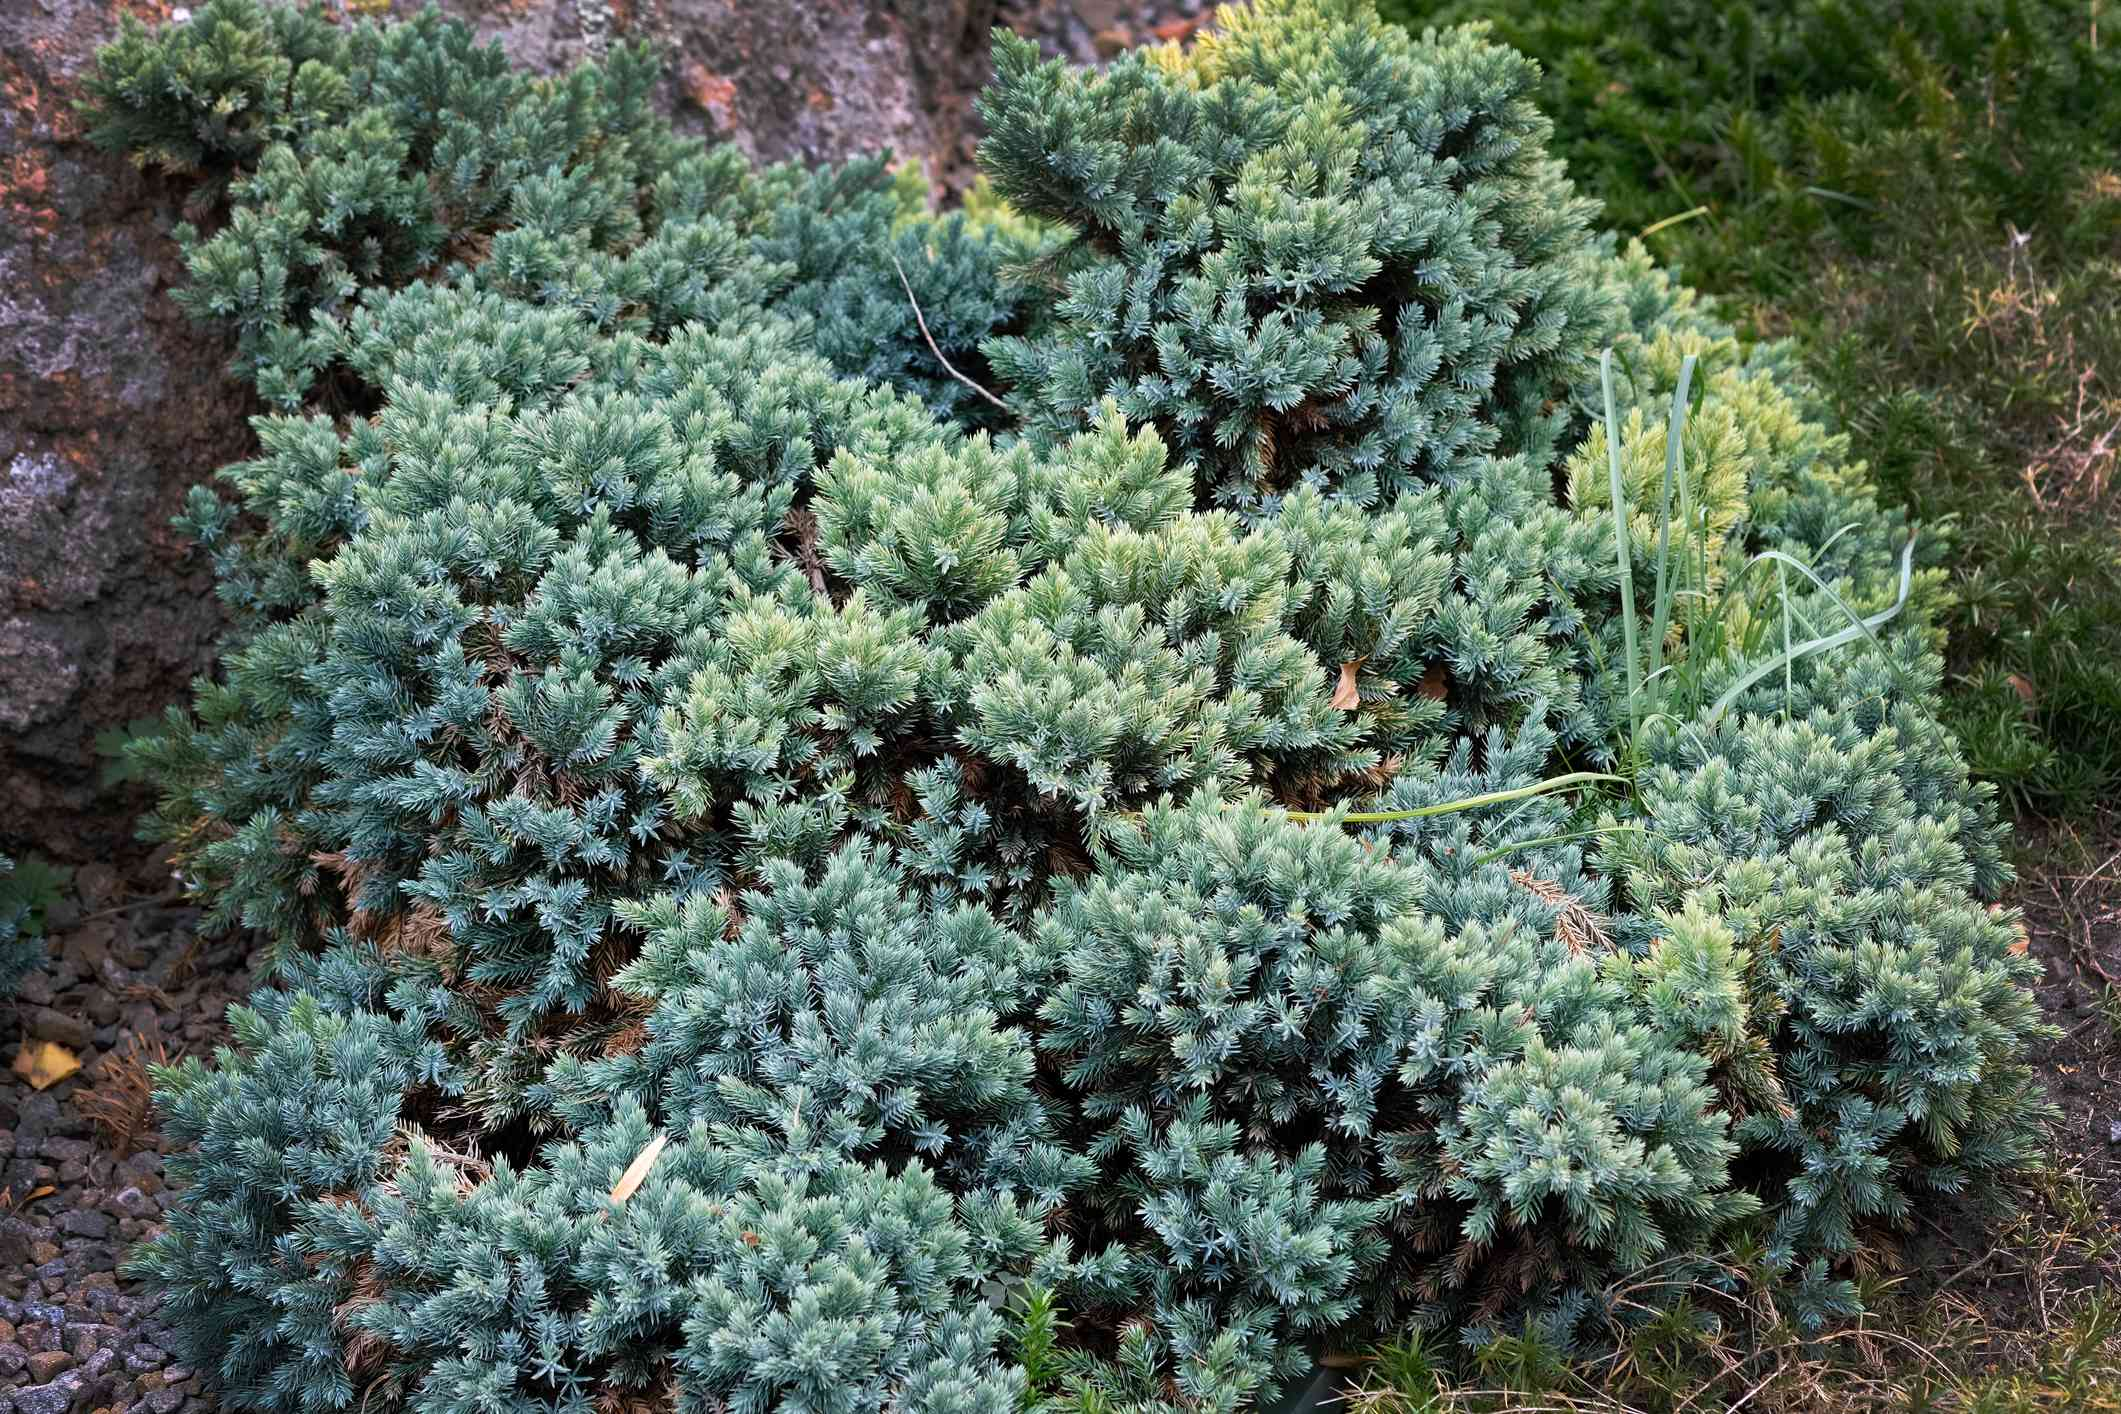 Blue Star Juniper covering a patch of ground